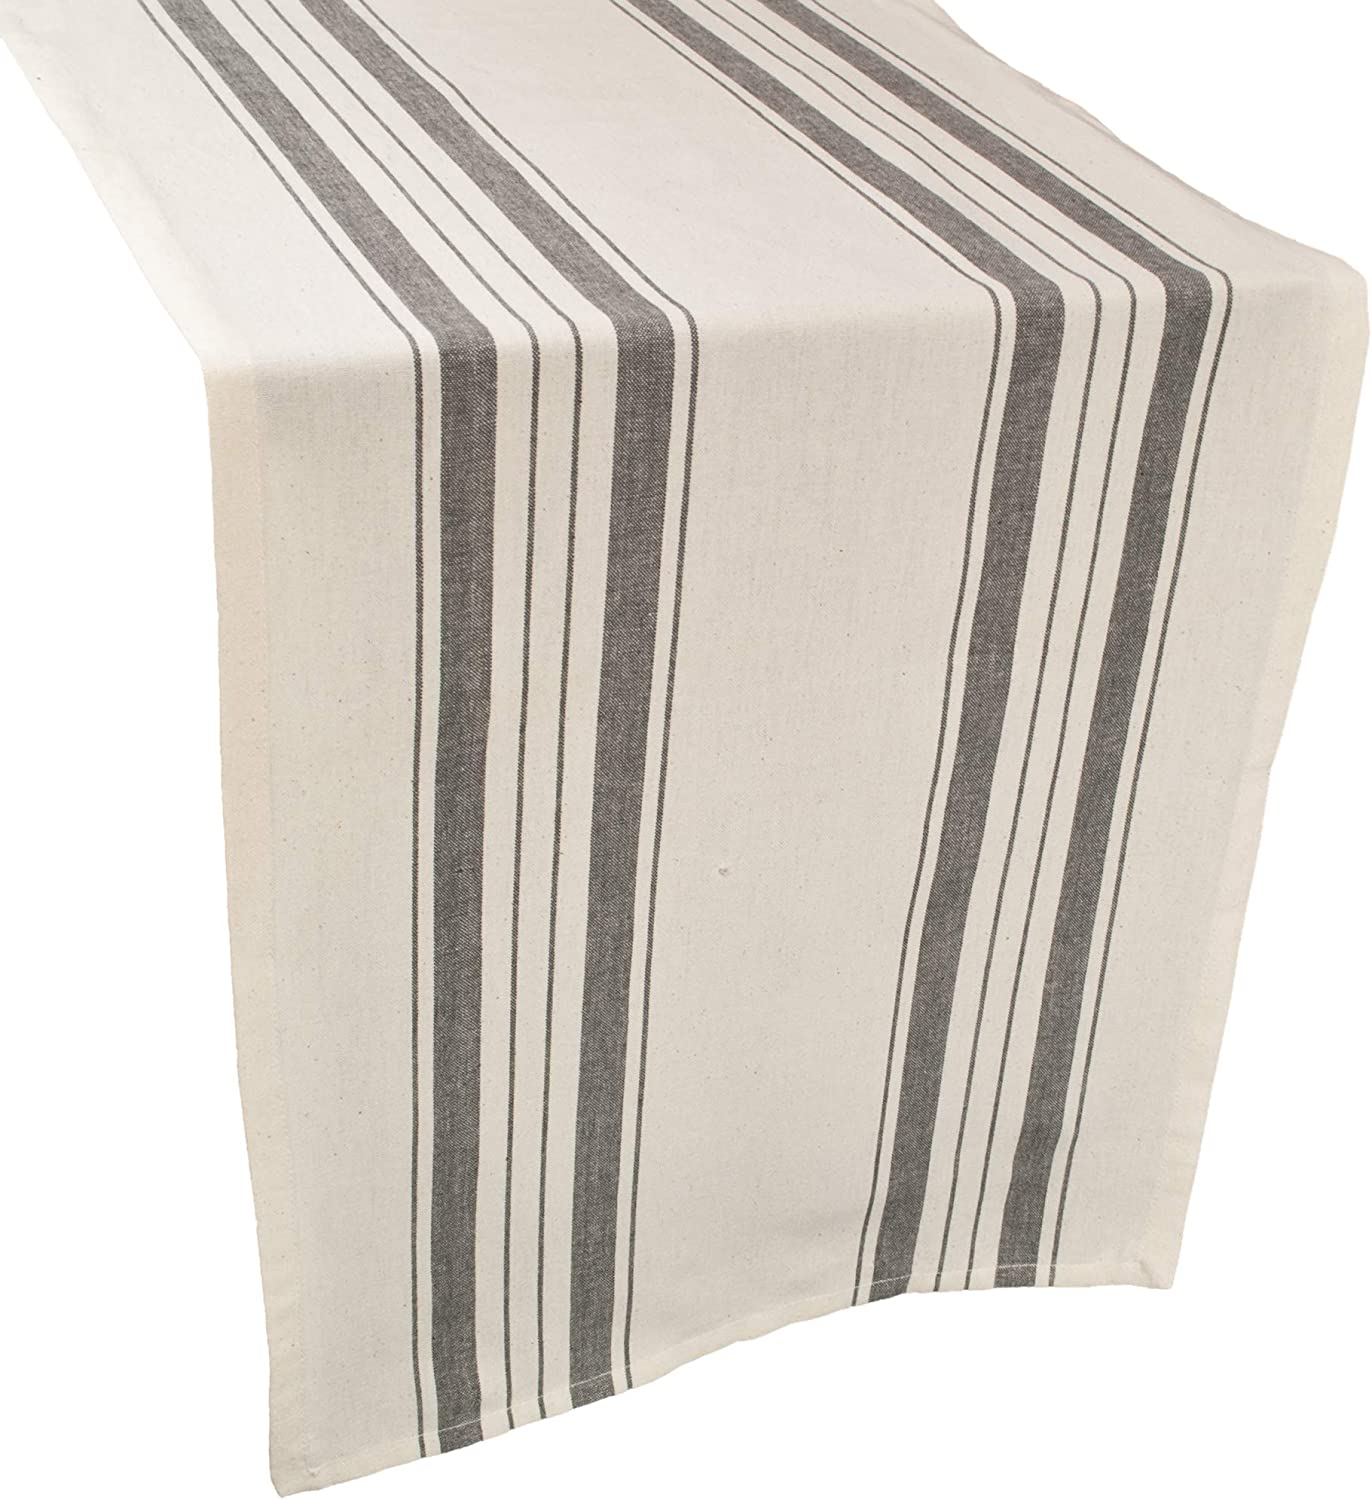 Linens, Art and Things Cotton Table Runner, Dresser Scarf, Coffee Table Runner, 16.5 x 88.5 Inch in Gray Beige Farmhouse Rustic Decor